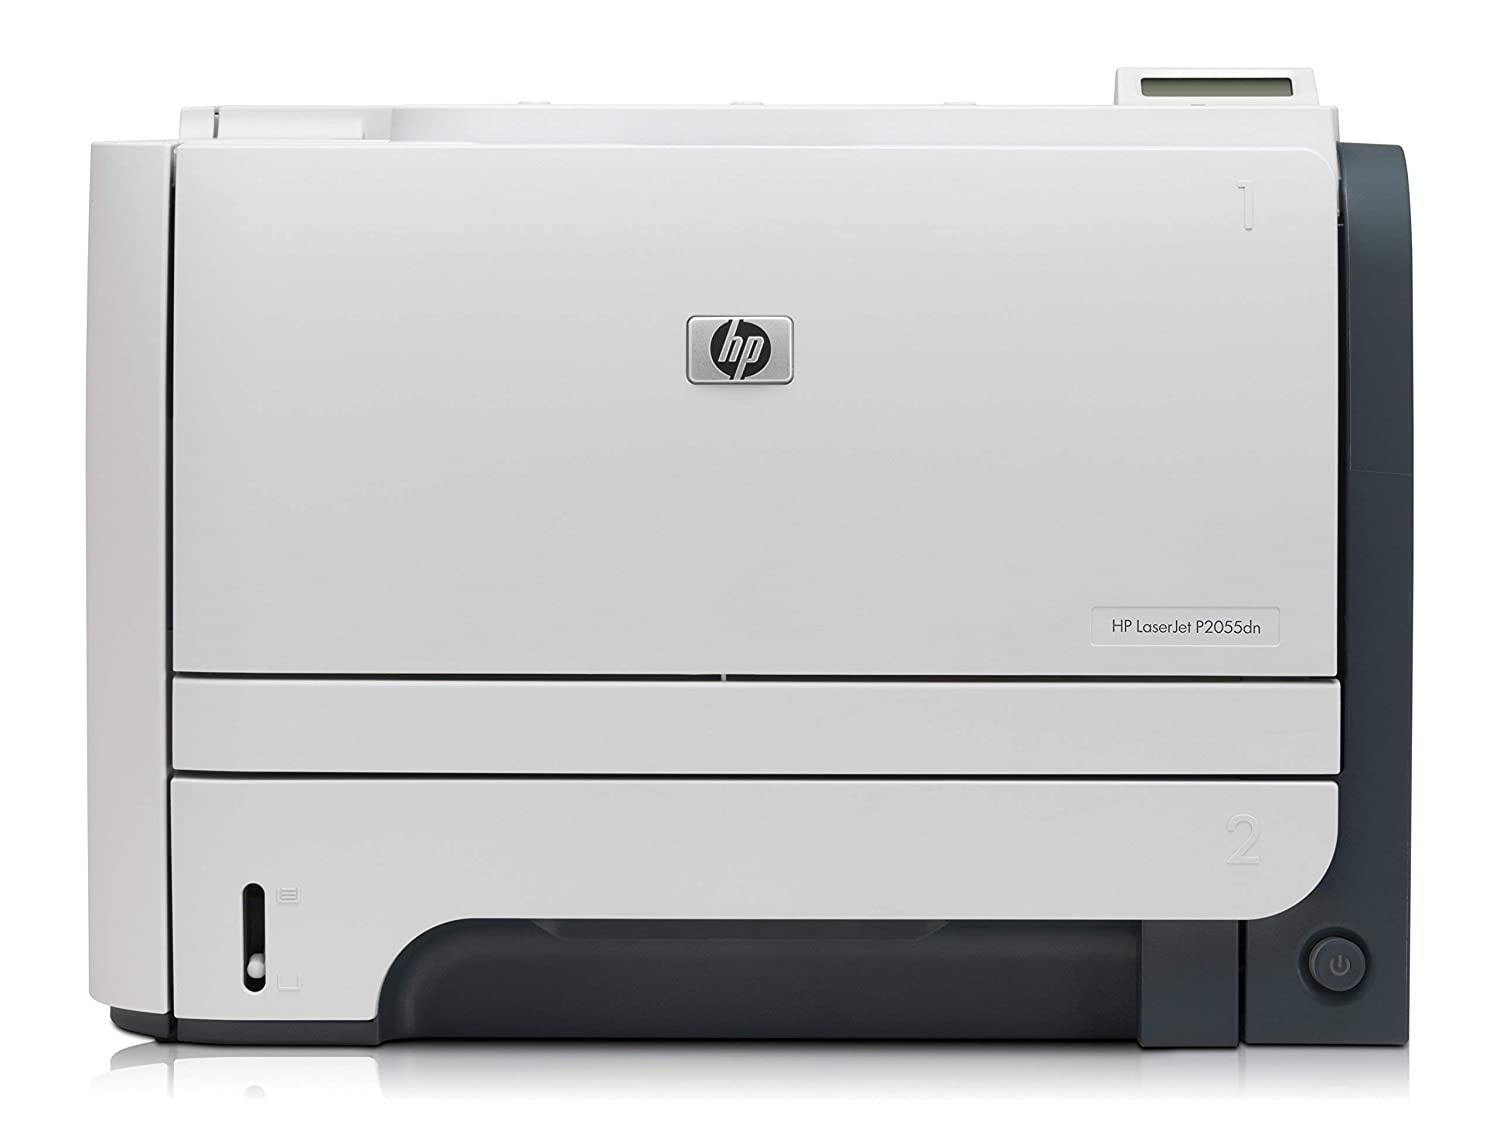 HP LaserJet P2055dn Workgroup Laser Printer Network - CE459A - (Renewed)